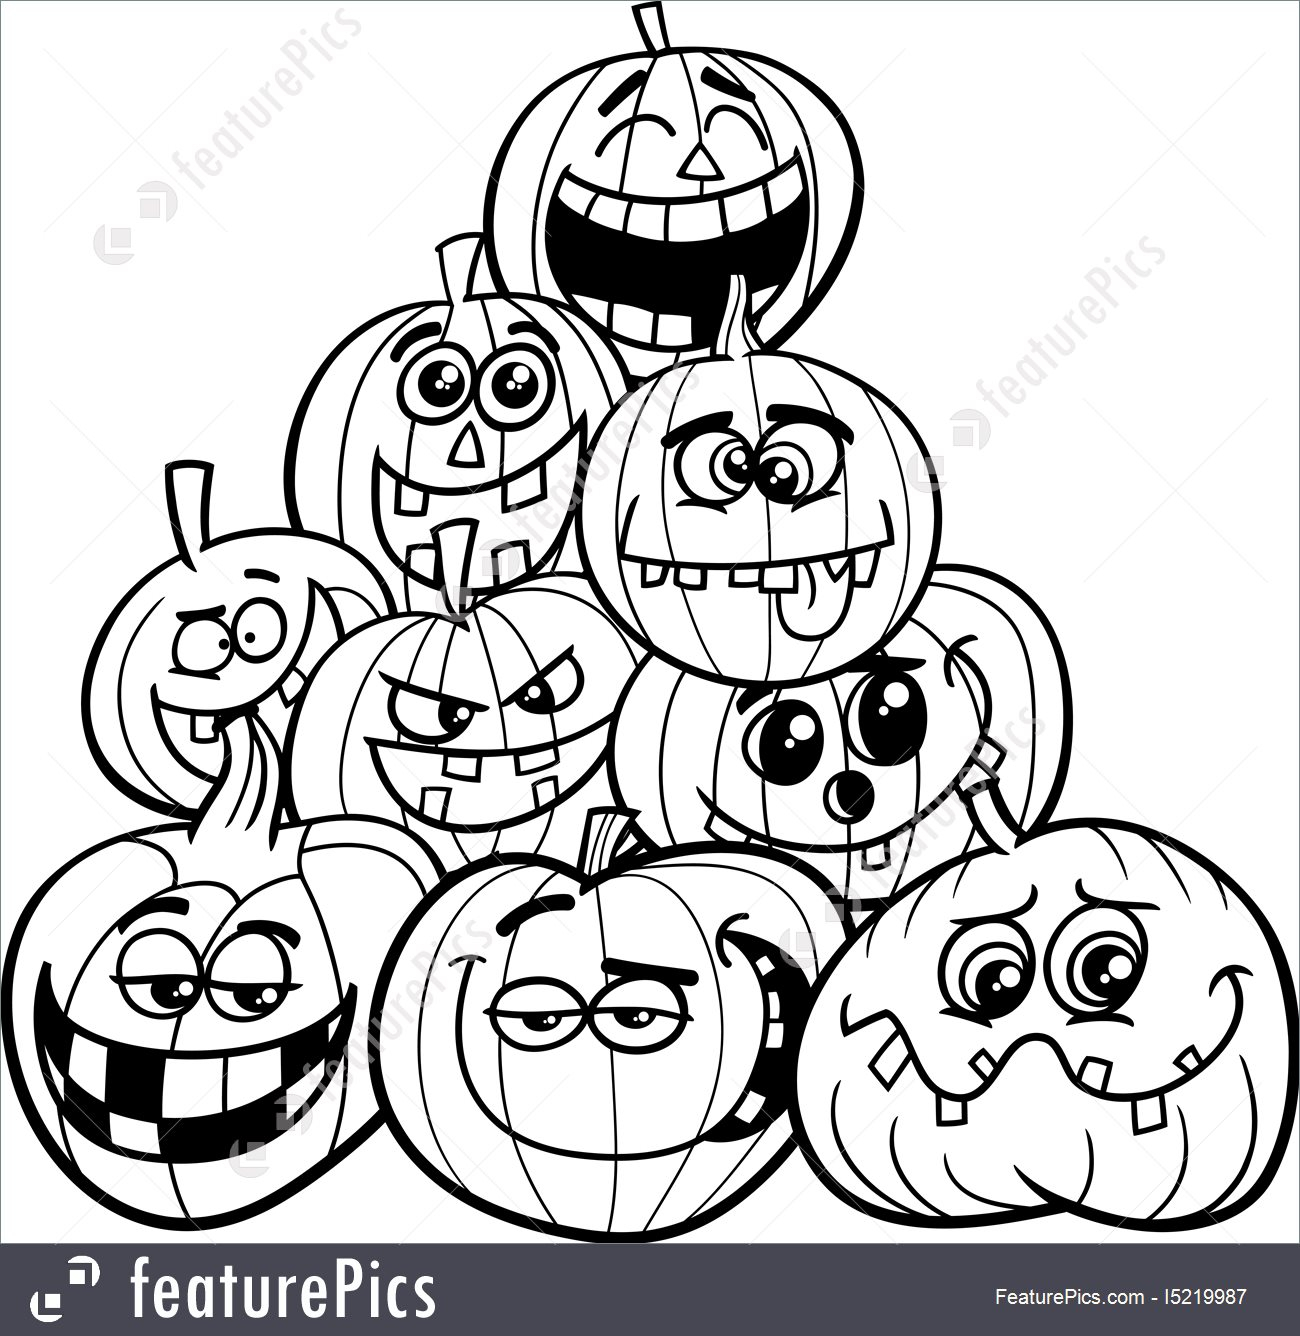 Halloween Pumpkin Coloring Pages Printables Coloring Pages Halloween Pumpkins Stock Illustration Pumpkin